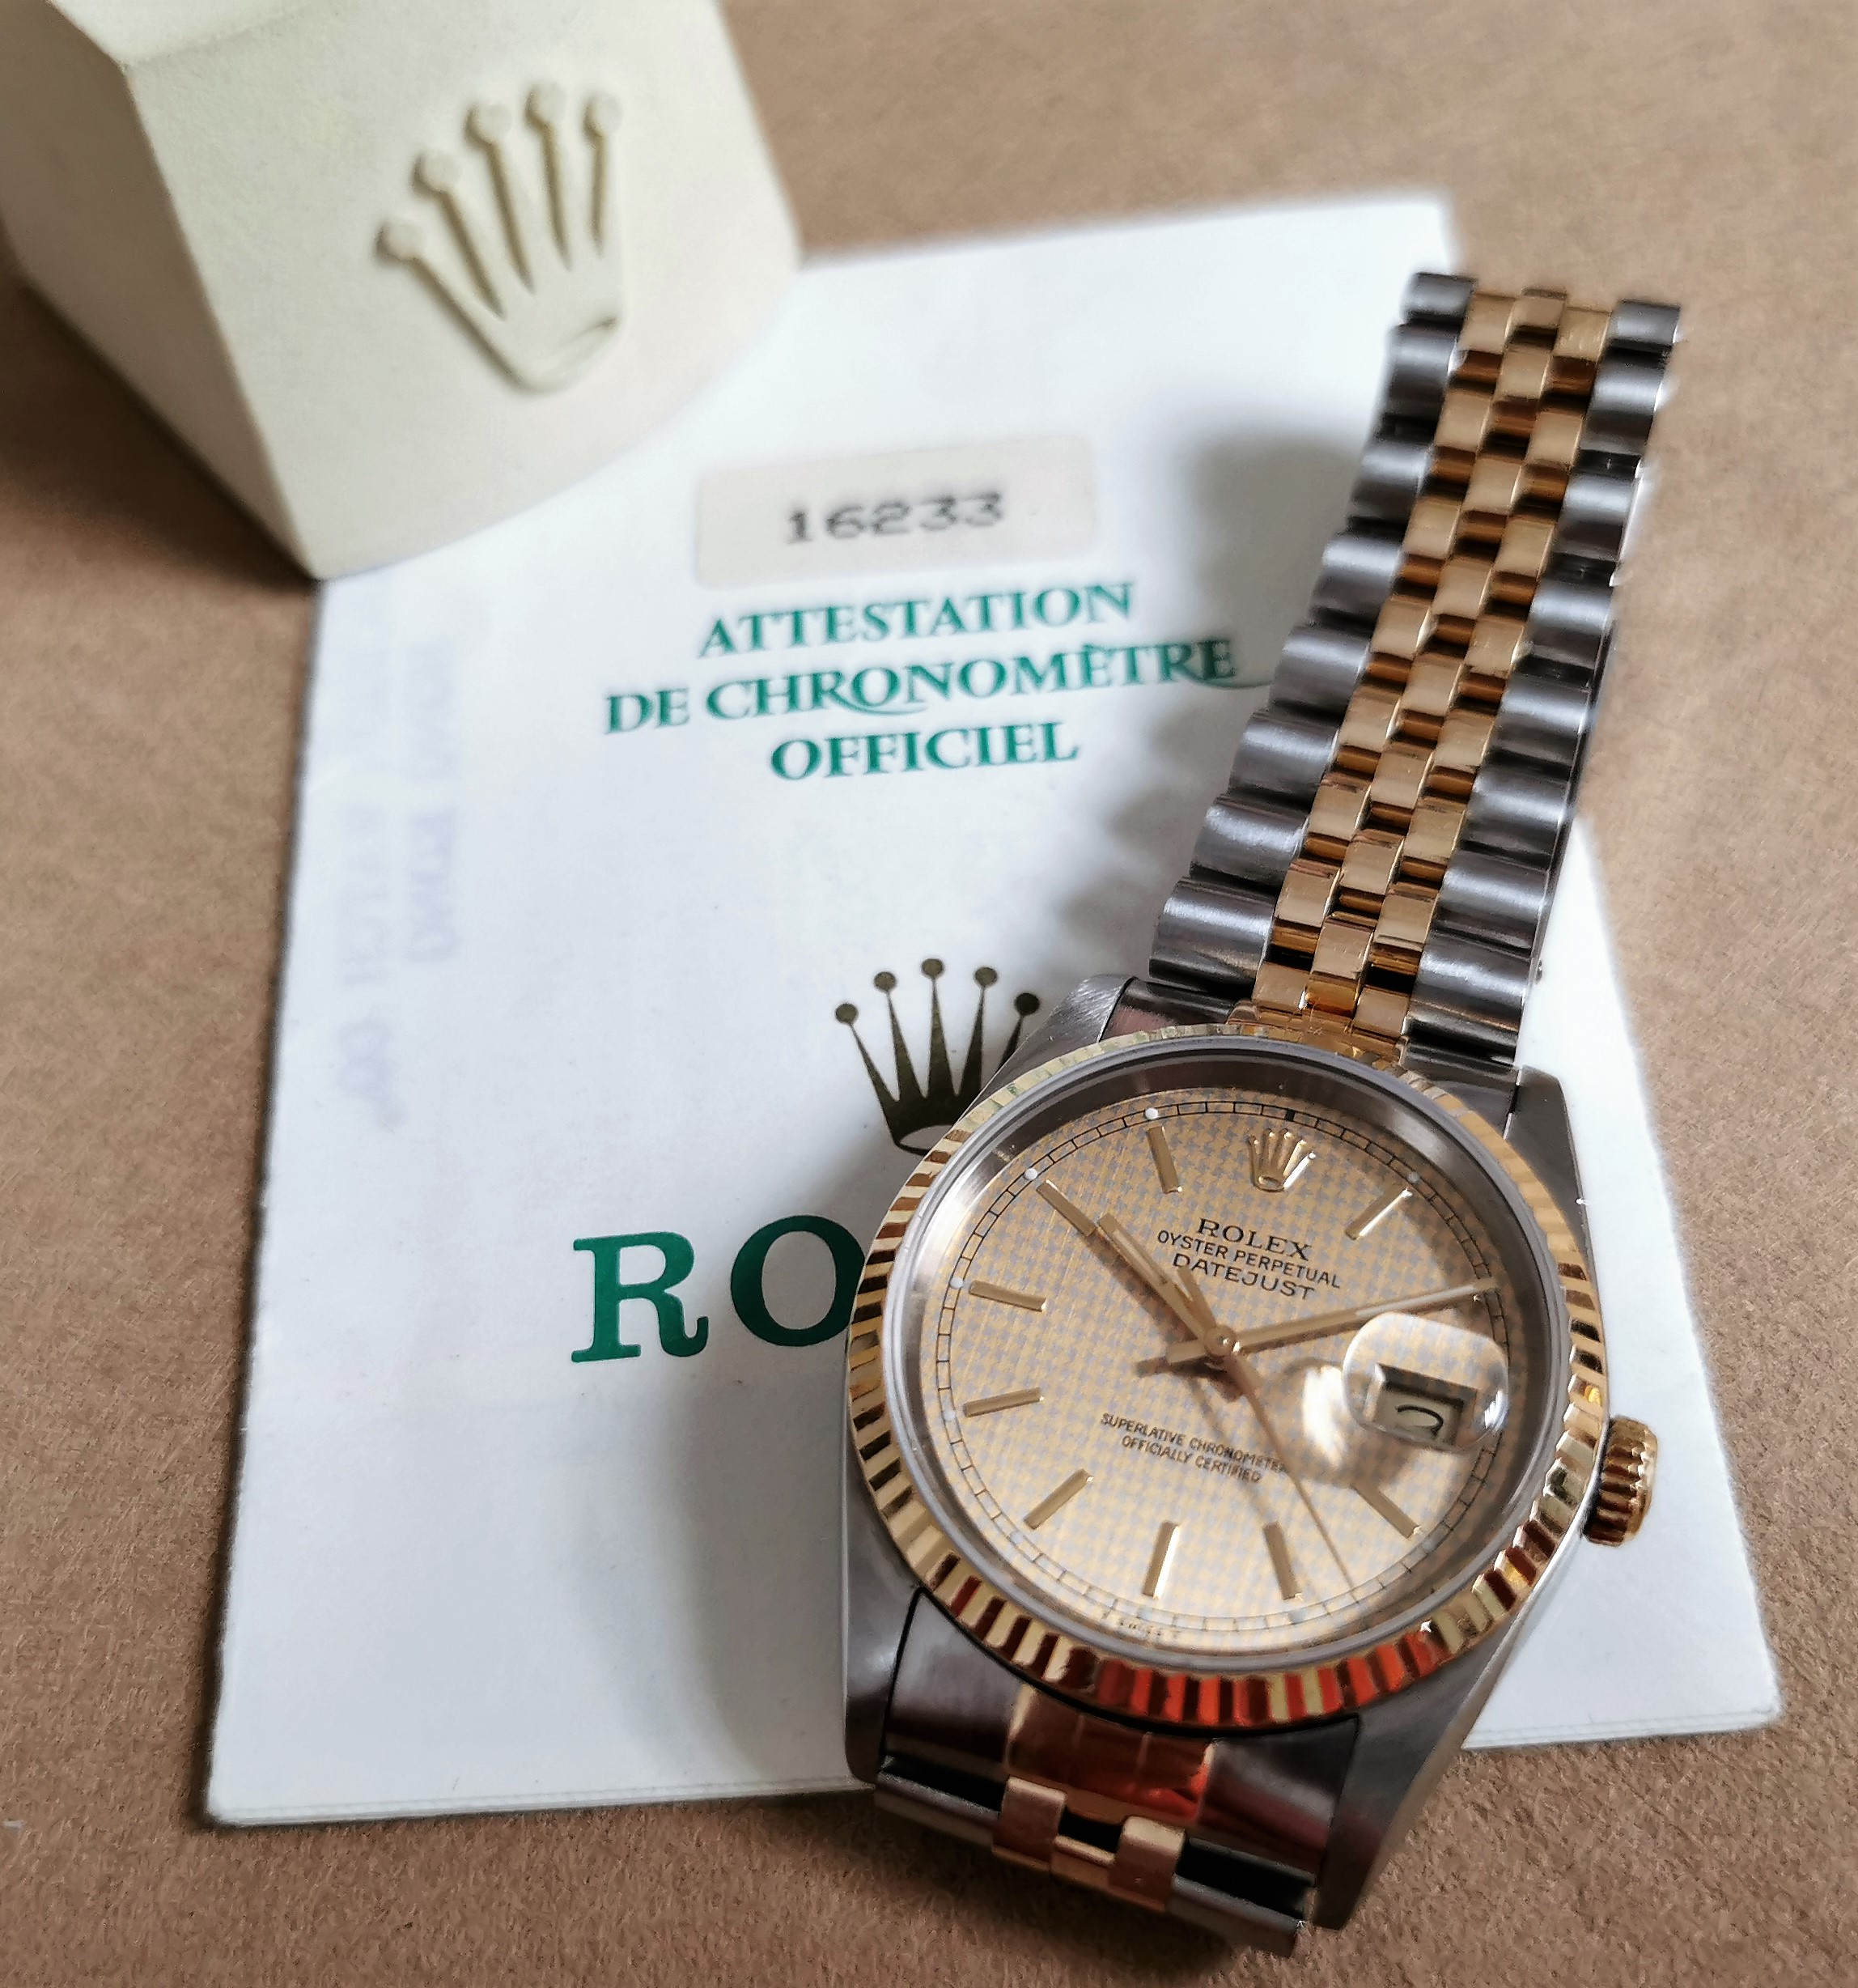 Rolex Datejust Datejust 36 mm 18 Kt Gold and Steel Jubilee Houndstooth Dial - Warranty 1991 | San Giorgio a Cremano